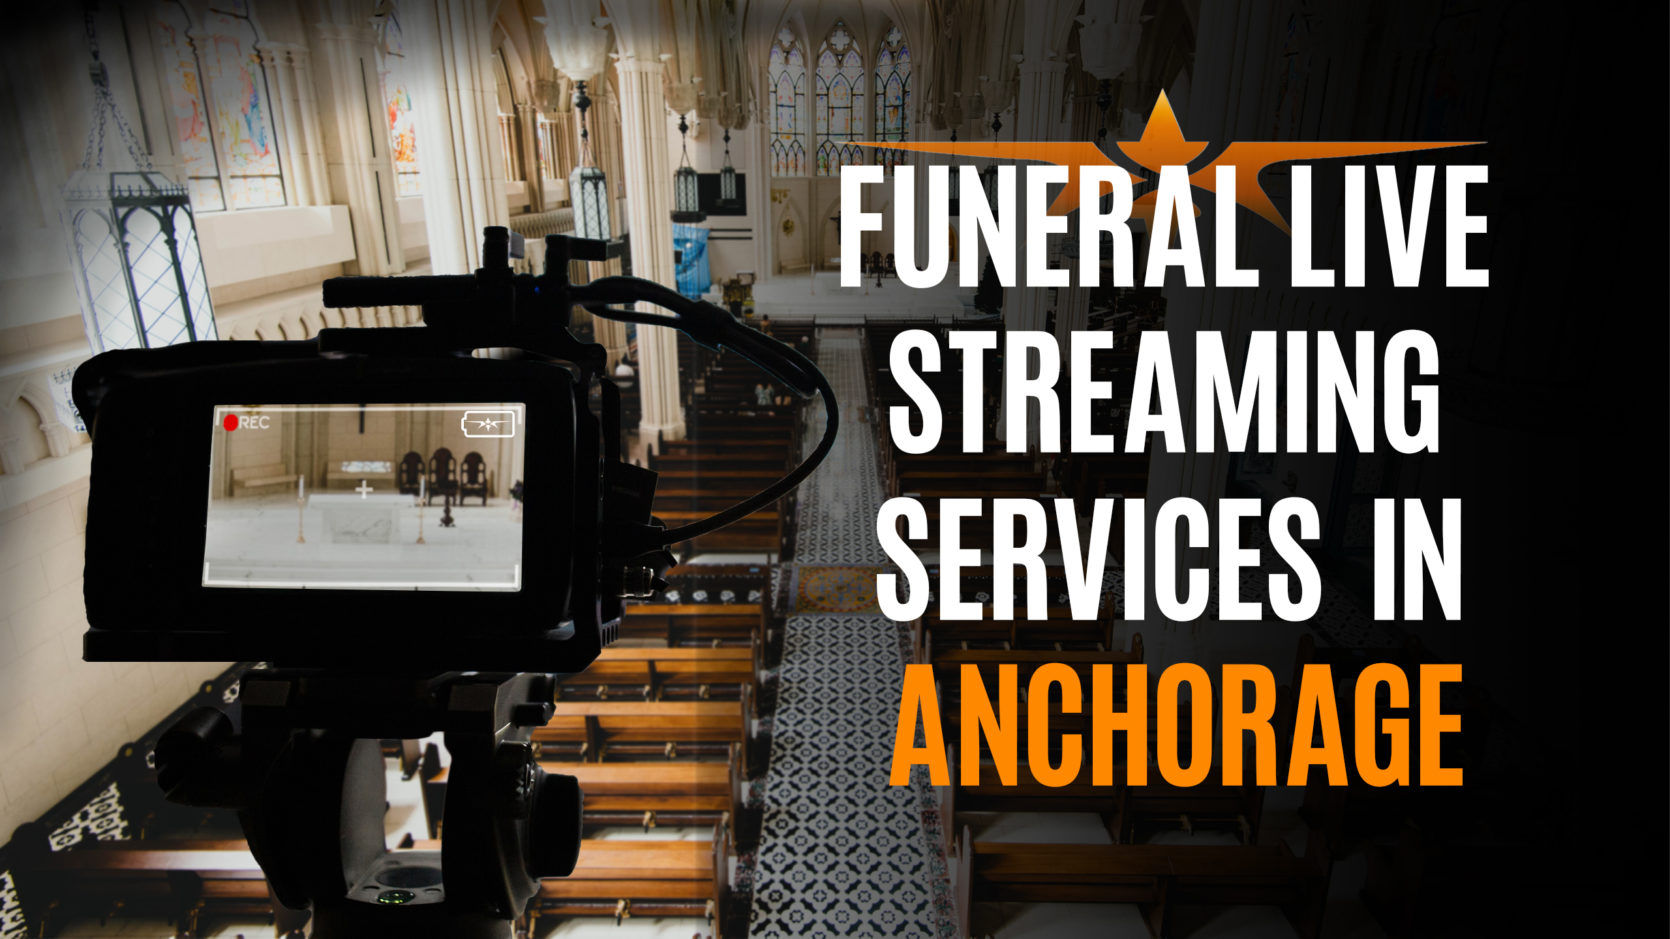 Funeral Live Streaming Services in Anchorage